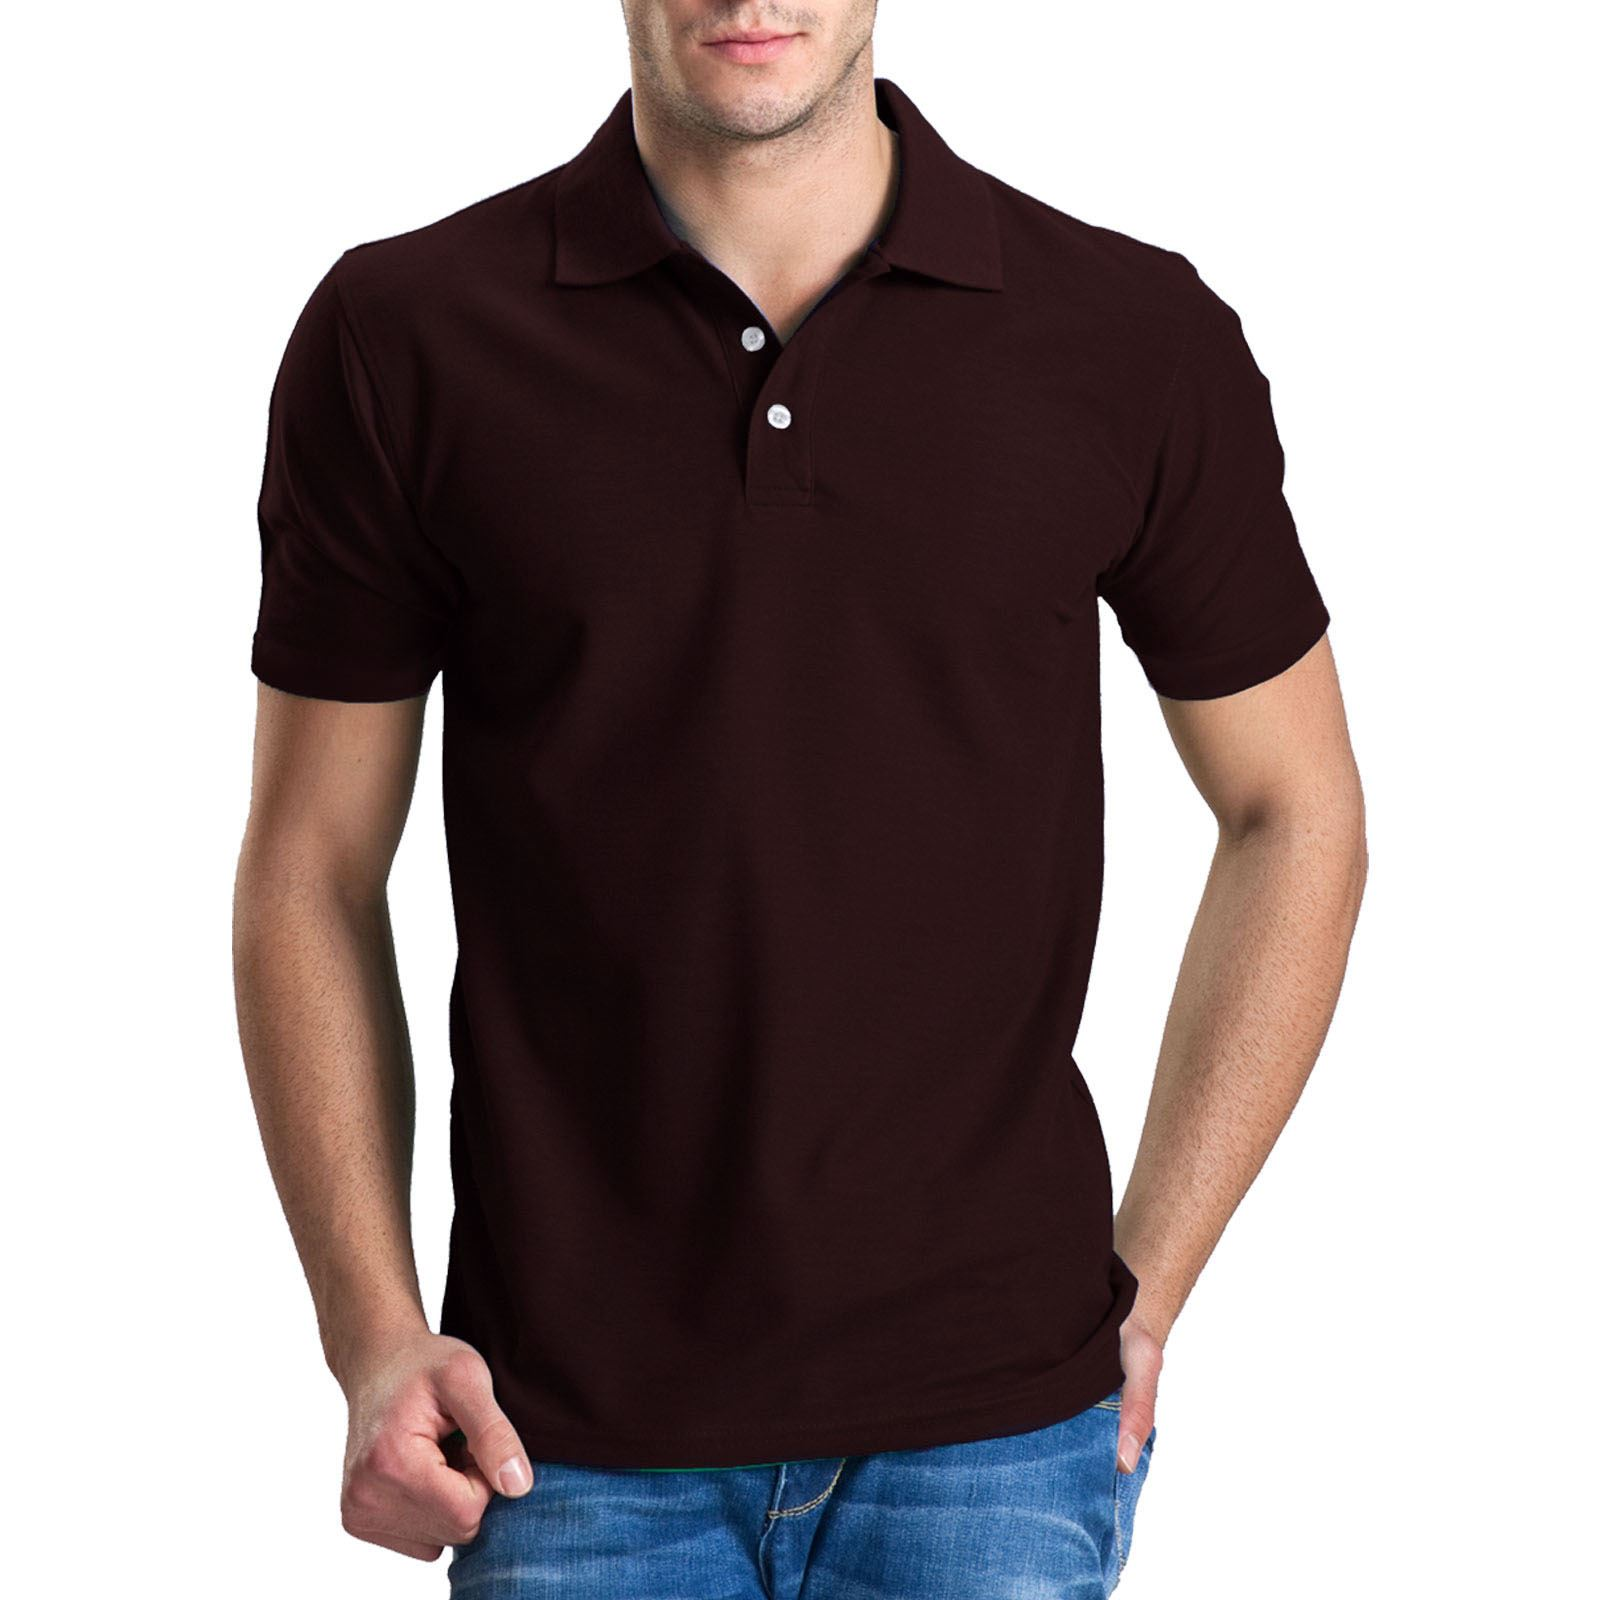 s xxl mens polo tops t shirts short sleeves tees pique collar sports golf tennis ebay. Black Bedroom Furniture Sets. Home Design Ideas